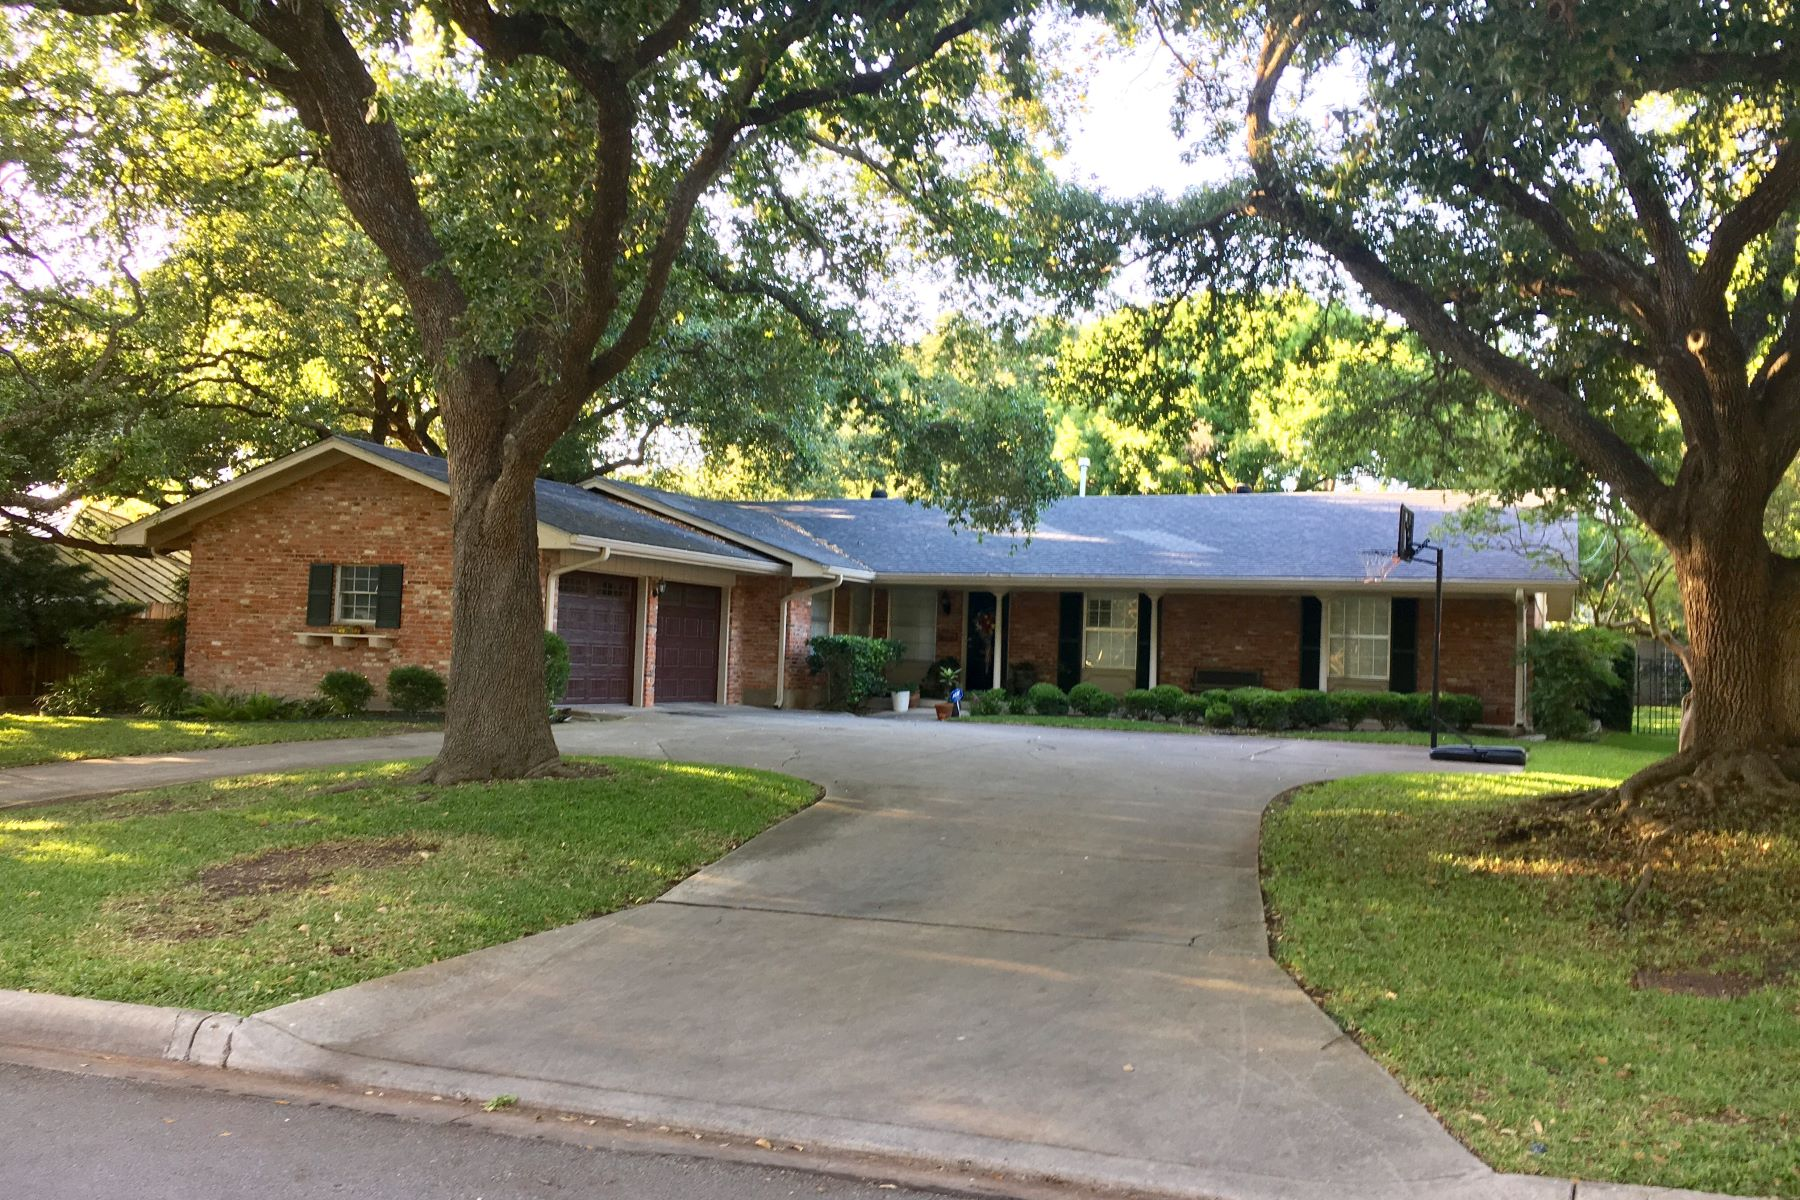 Single Family Home for Rent at 2303 Briarwood 2303 Briarwood San Antonio, Texas 78209 United States